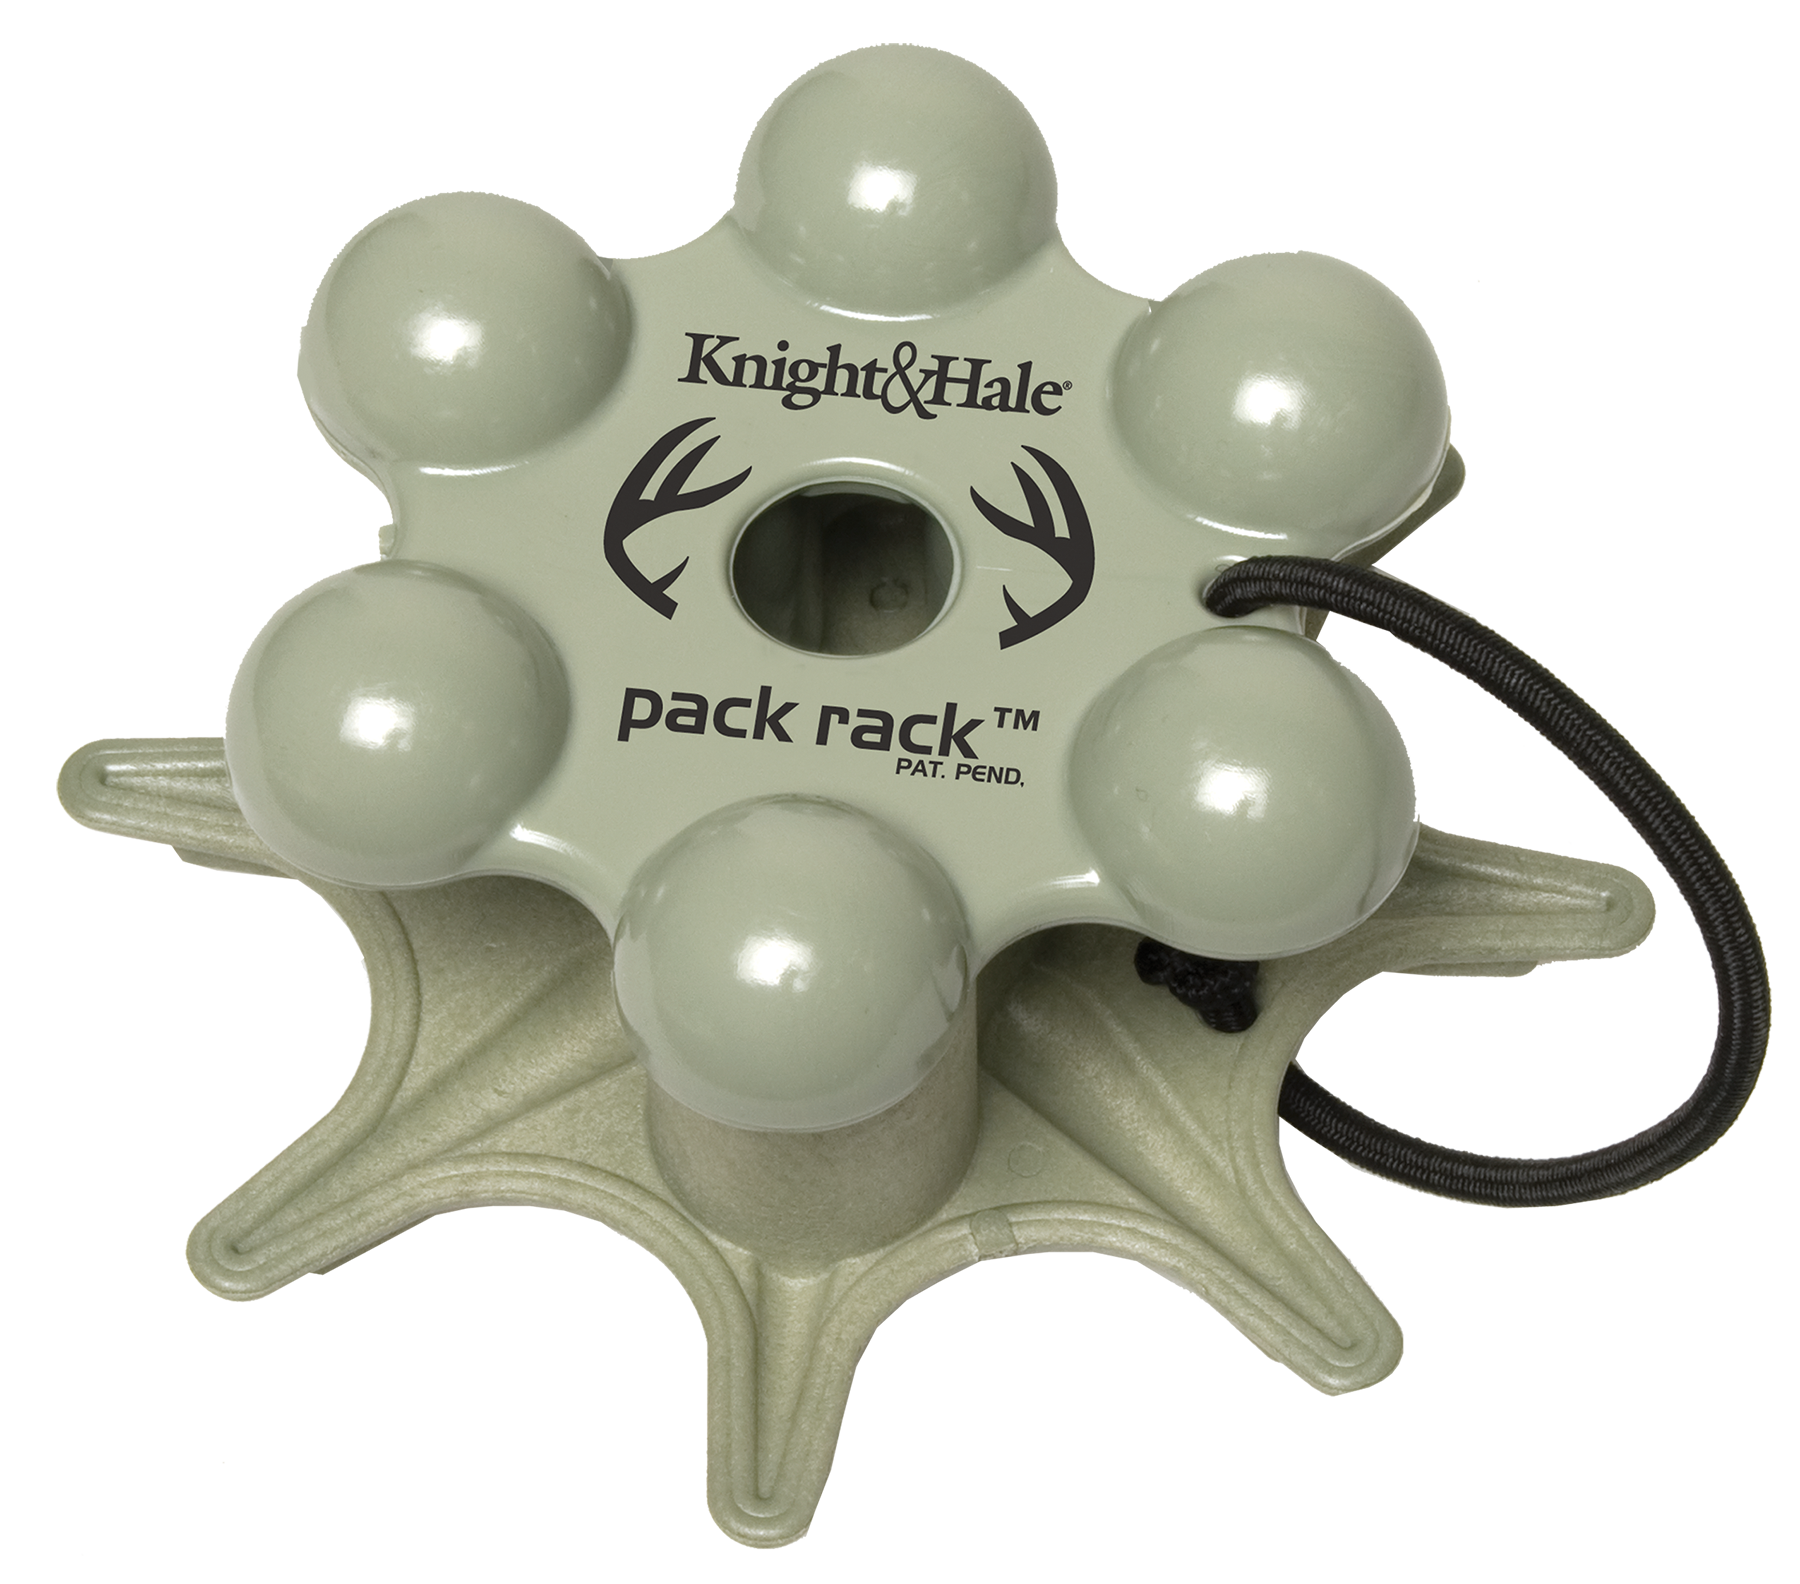 Knight & Hale KH1019A Pack Rack Rattling System